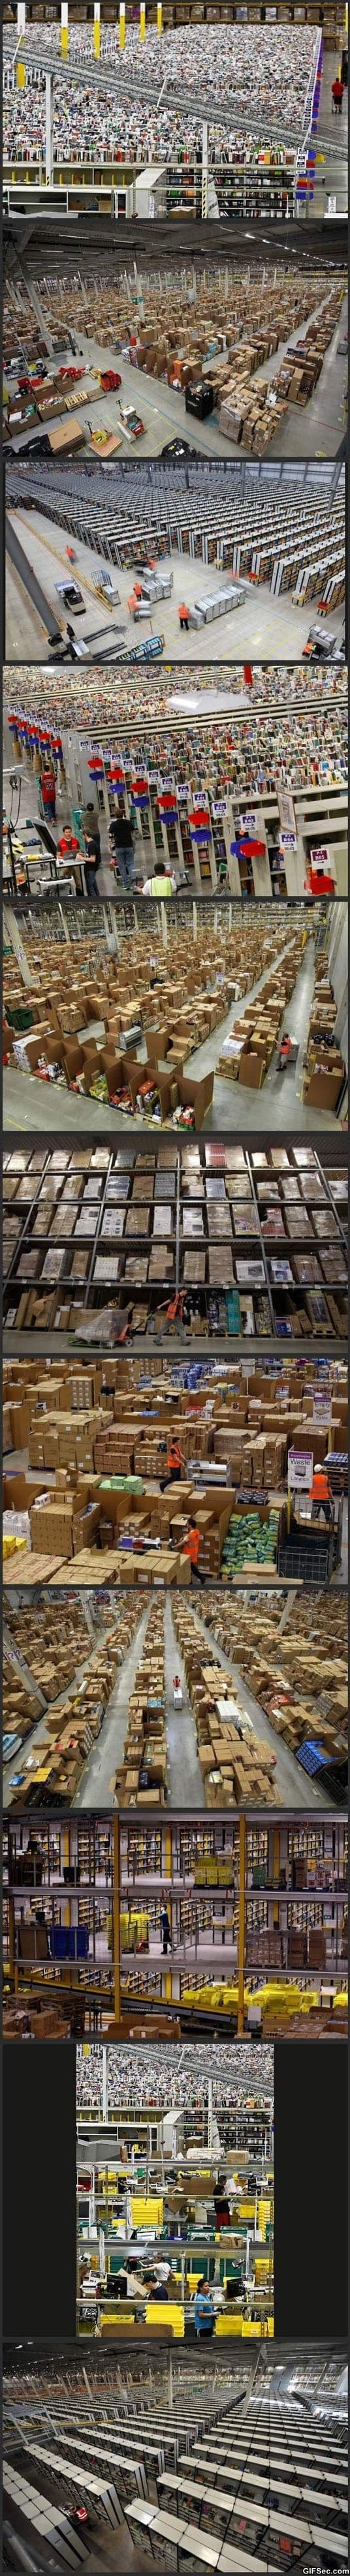 What it looks like inside Amazon